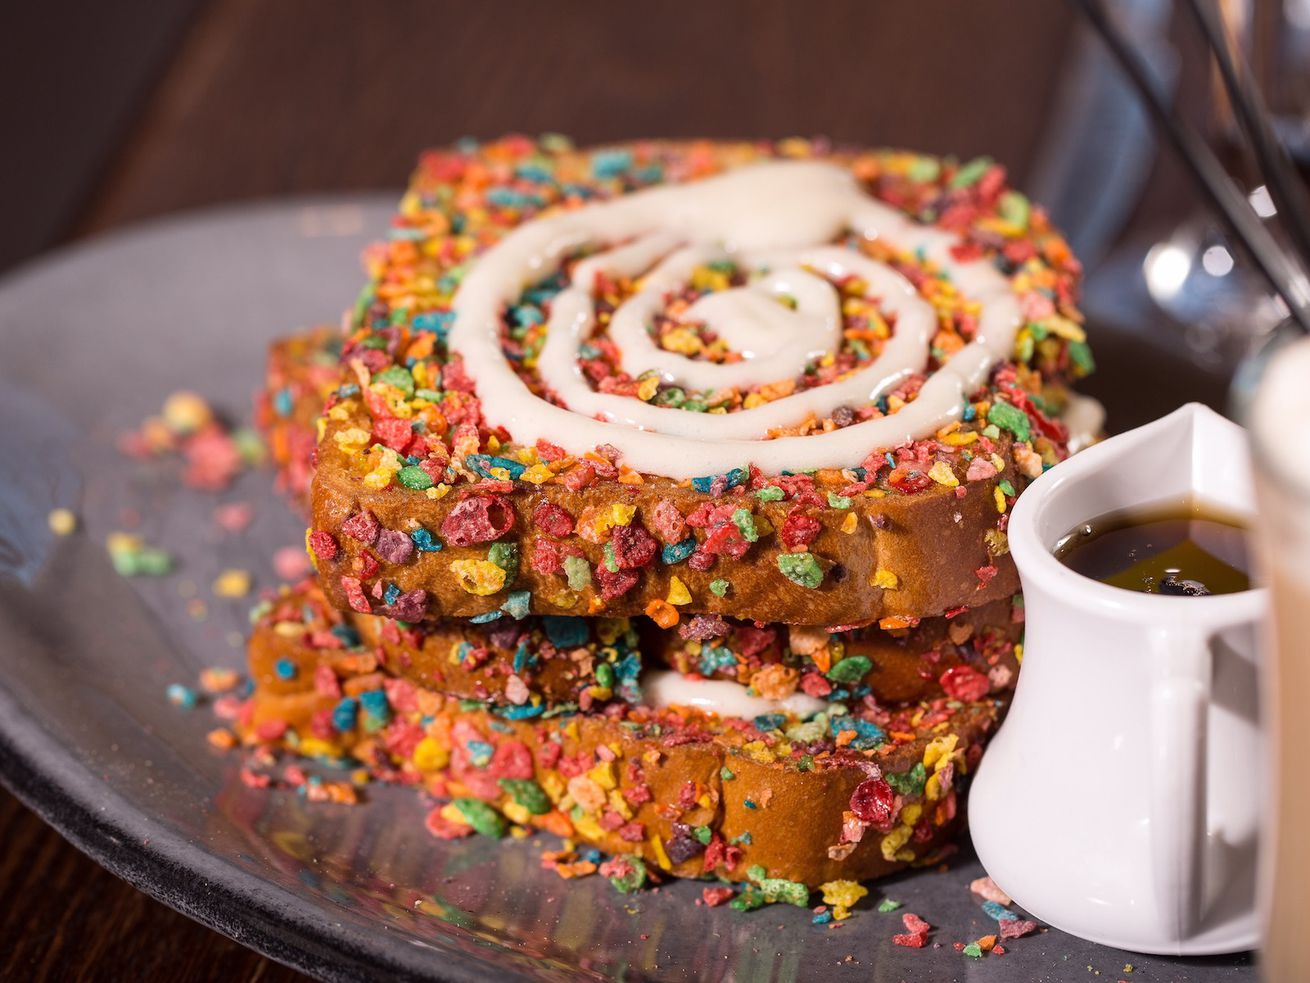 French toast with Fruity Pebbles